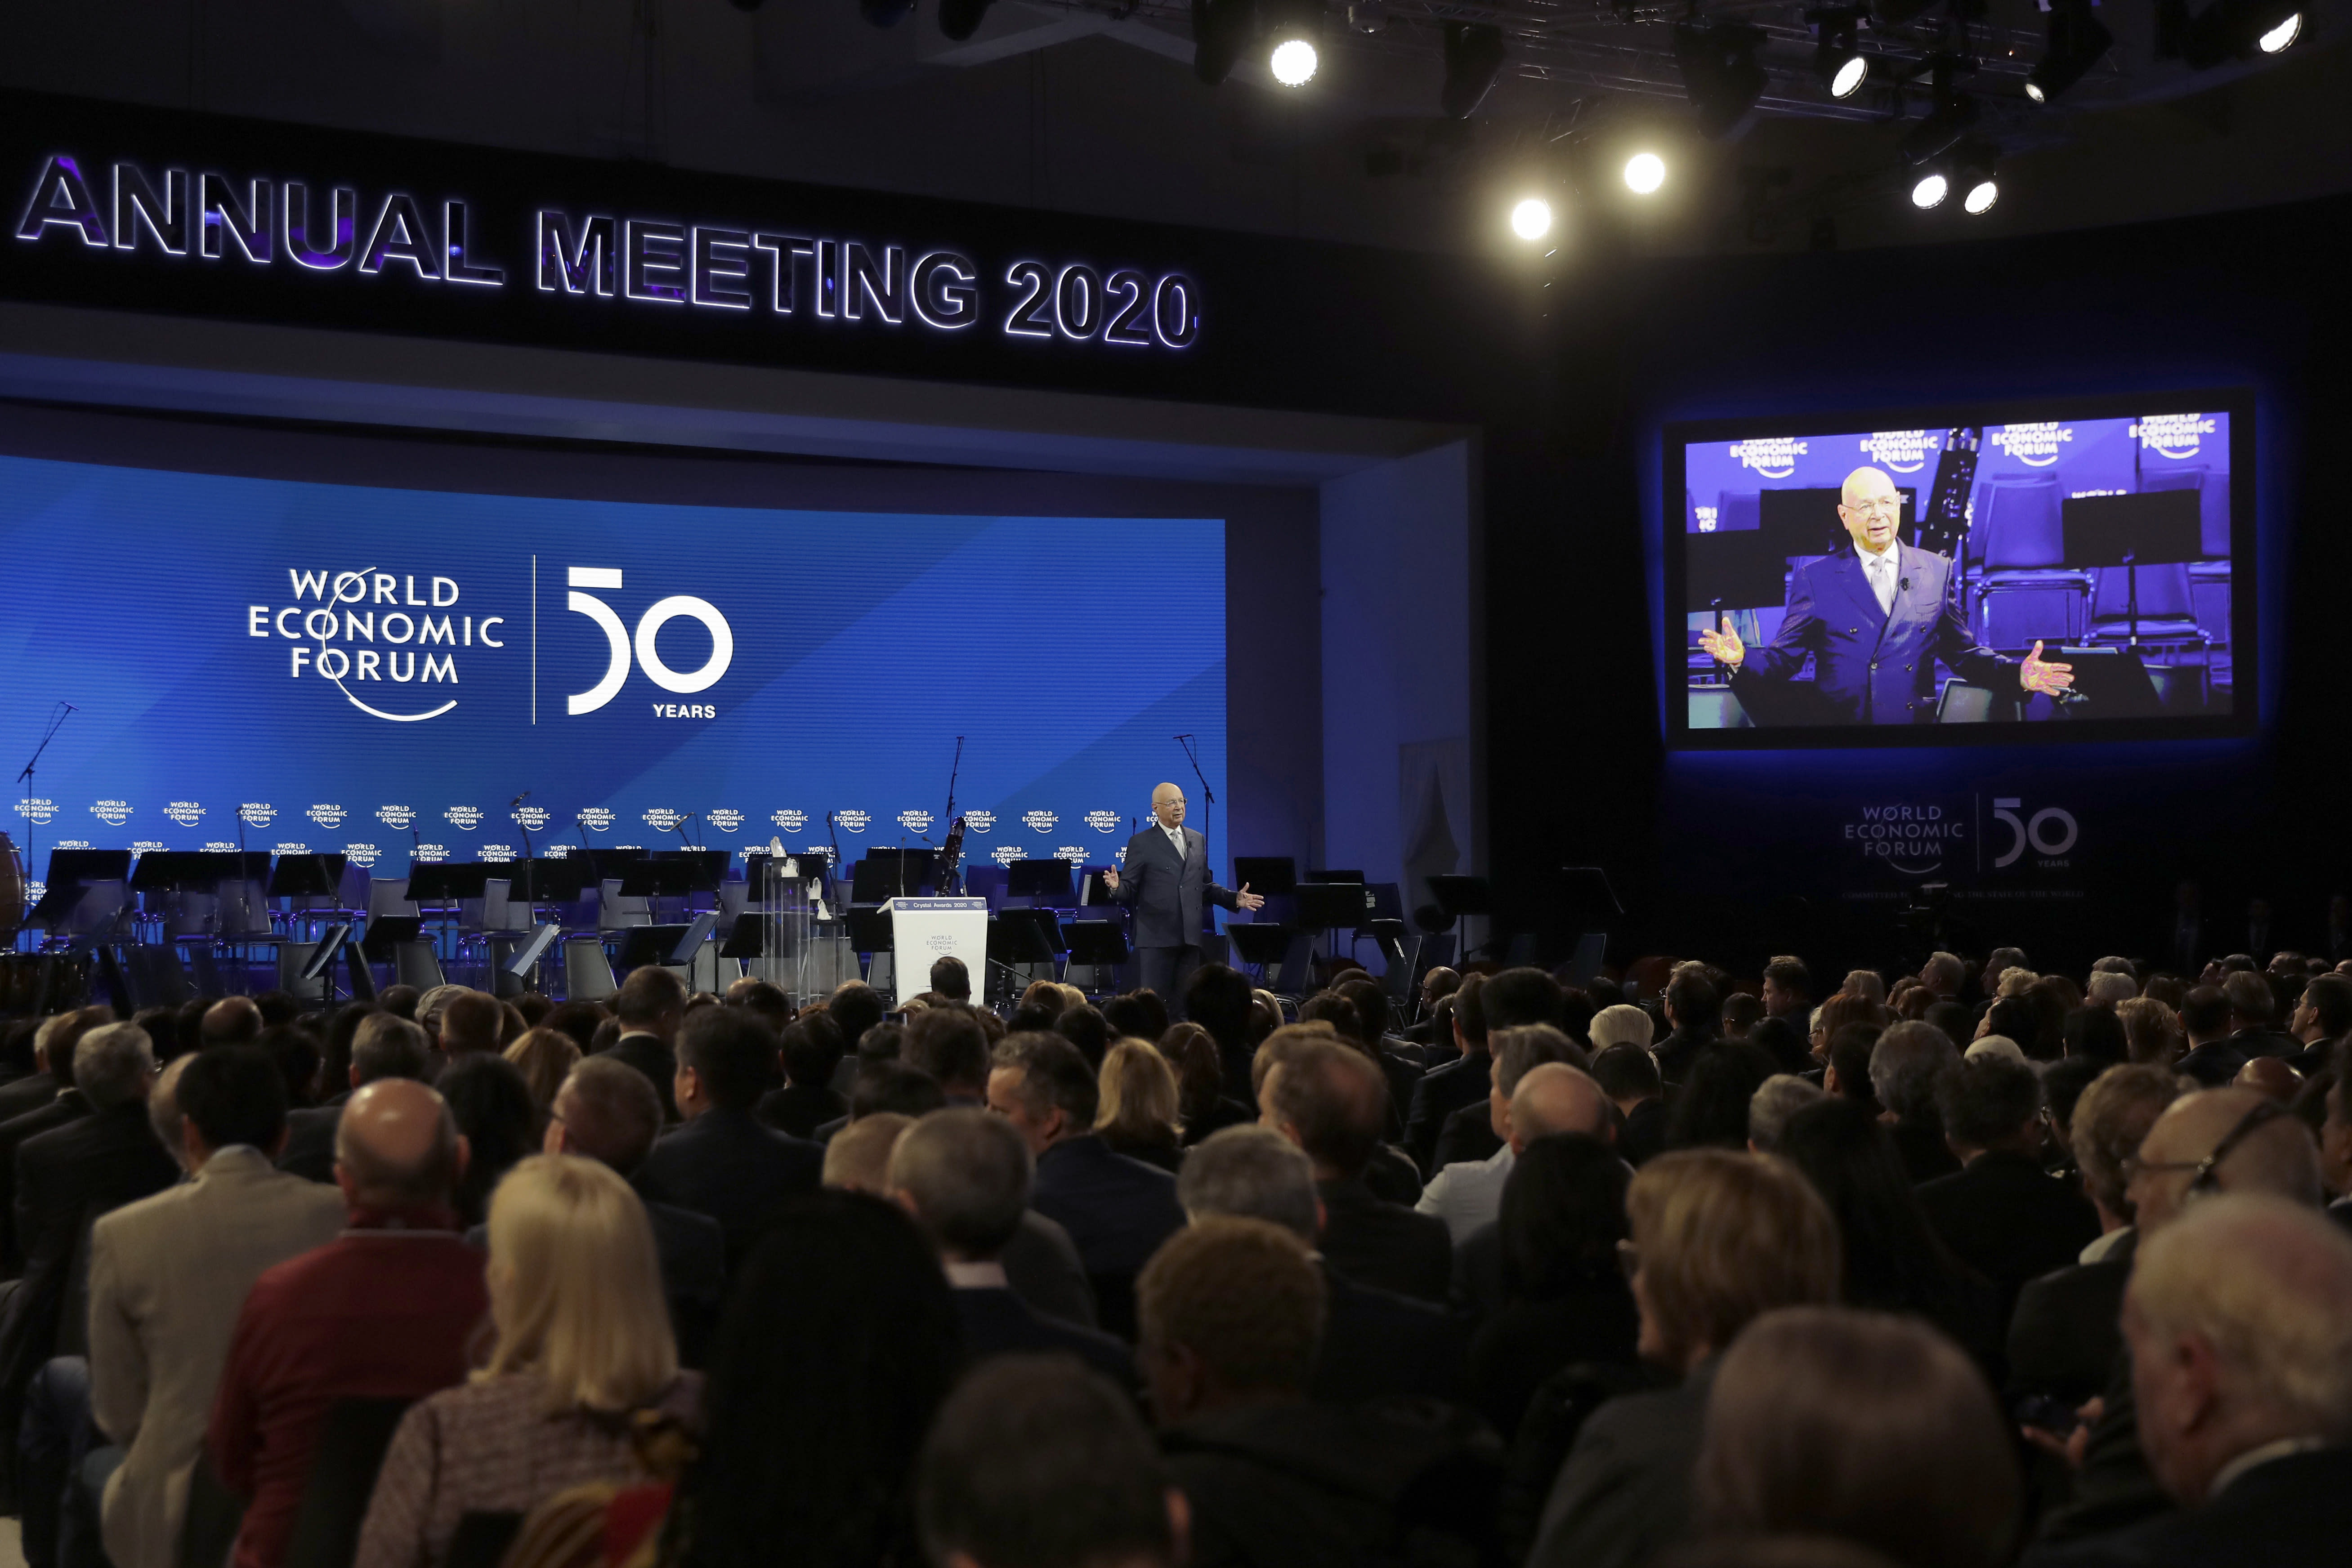 Climate not considered a top 10 risk by CEOs - survey